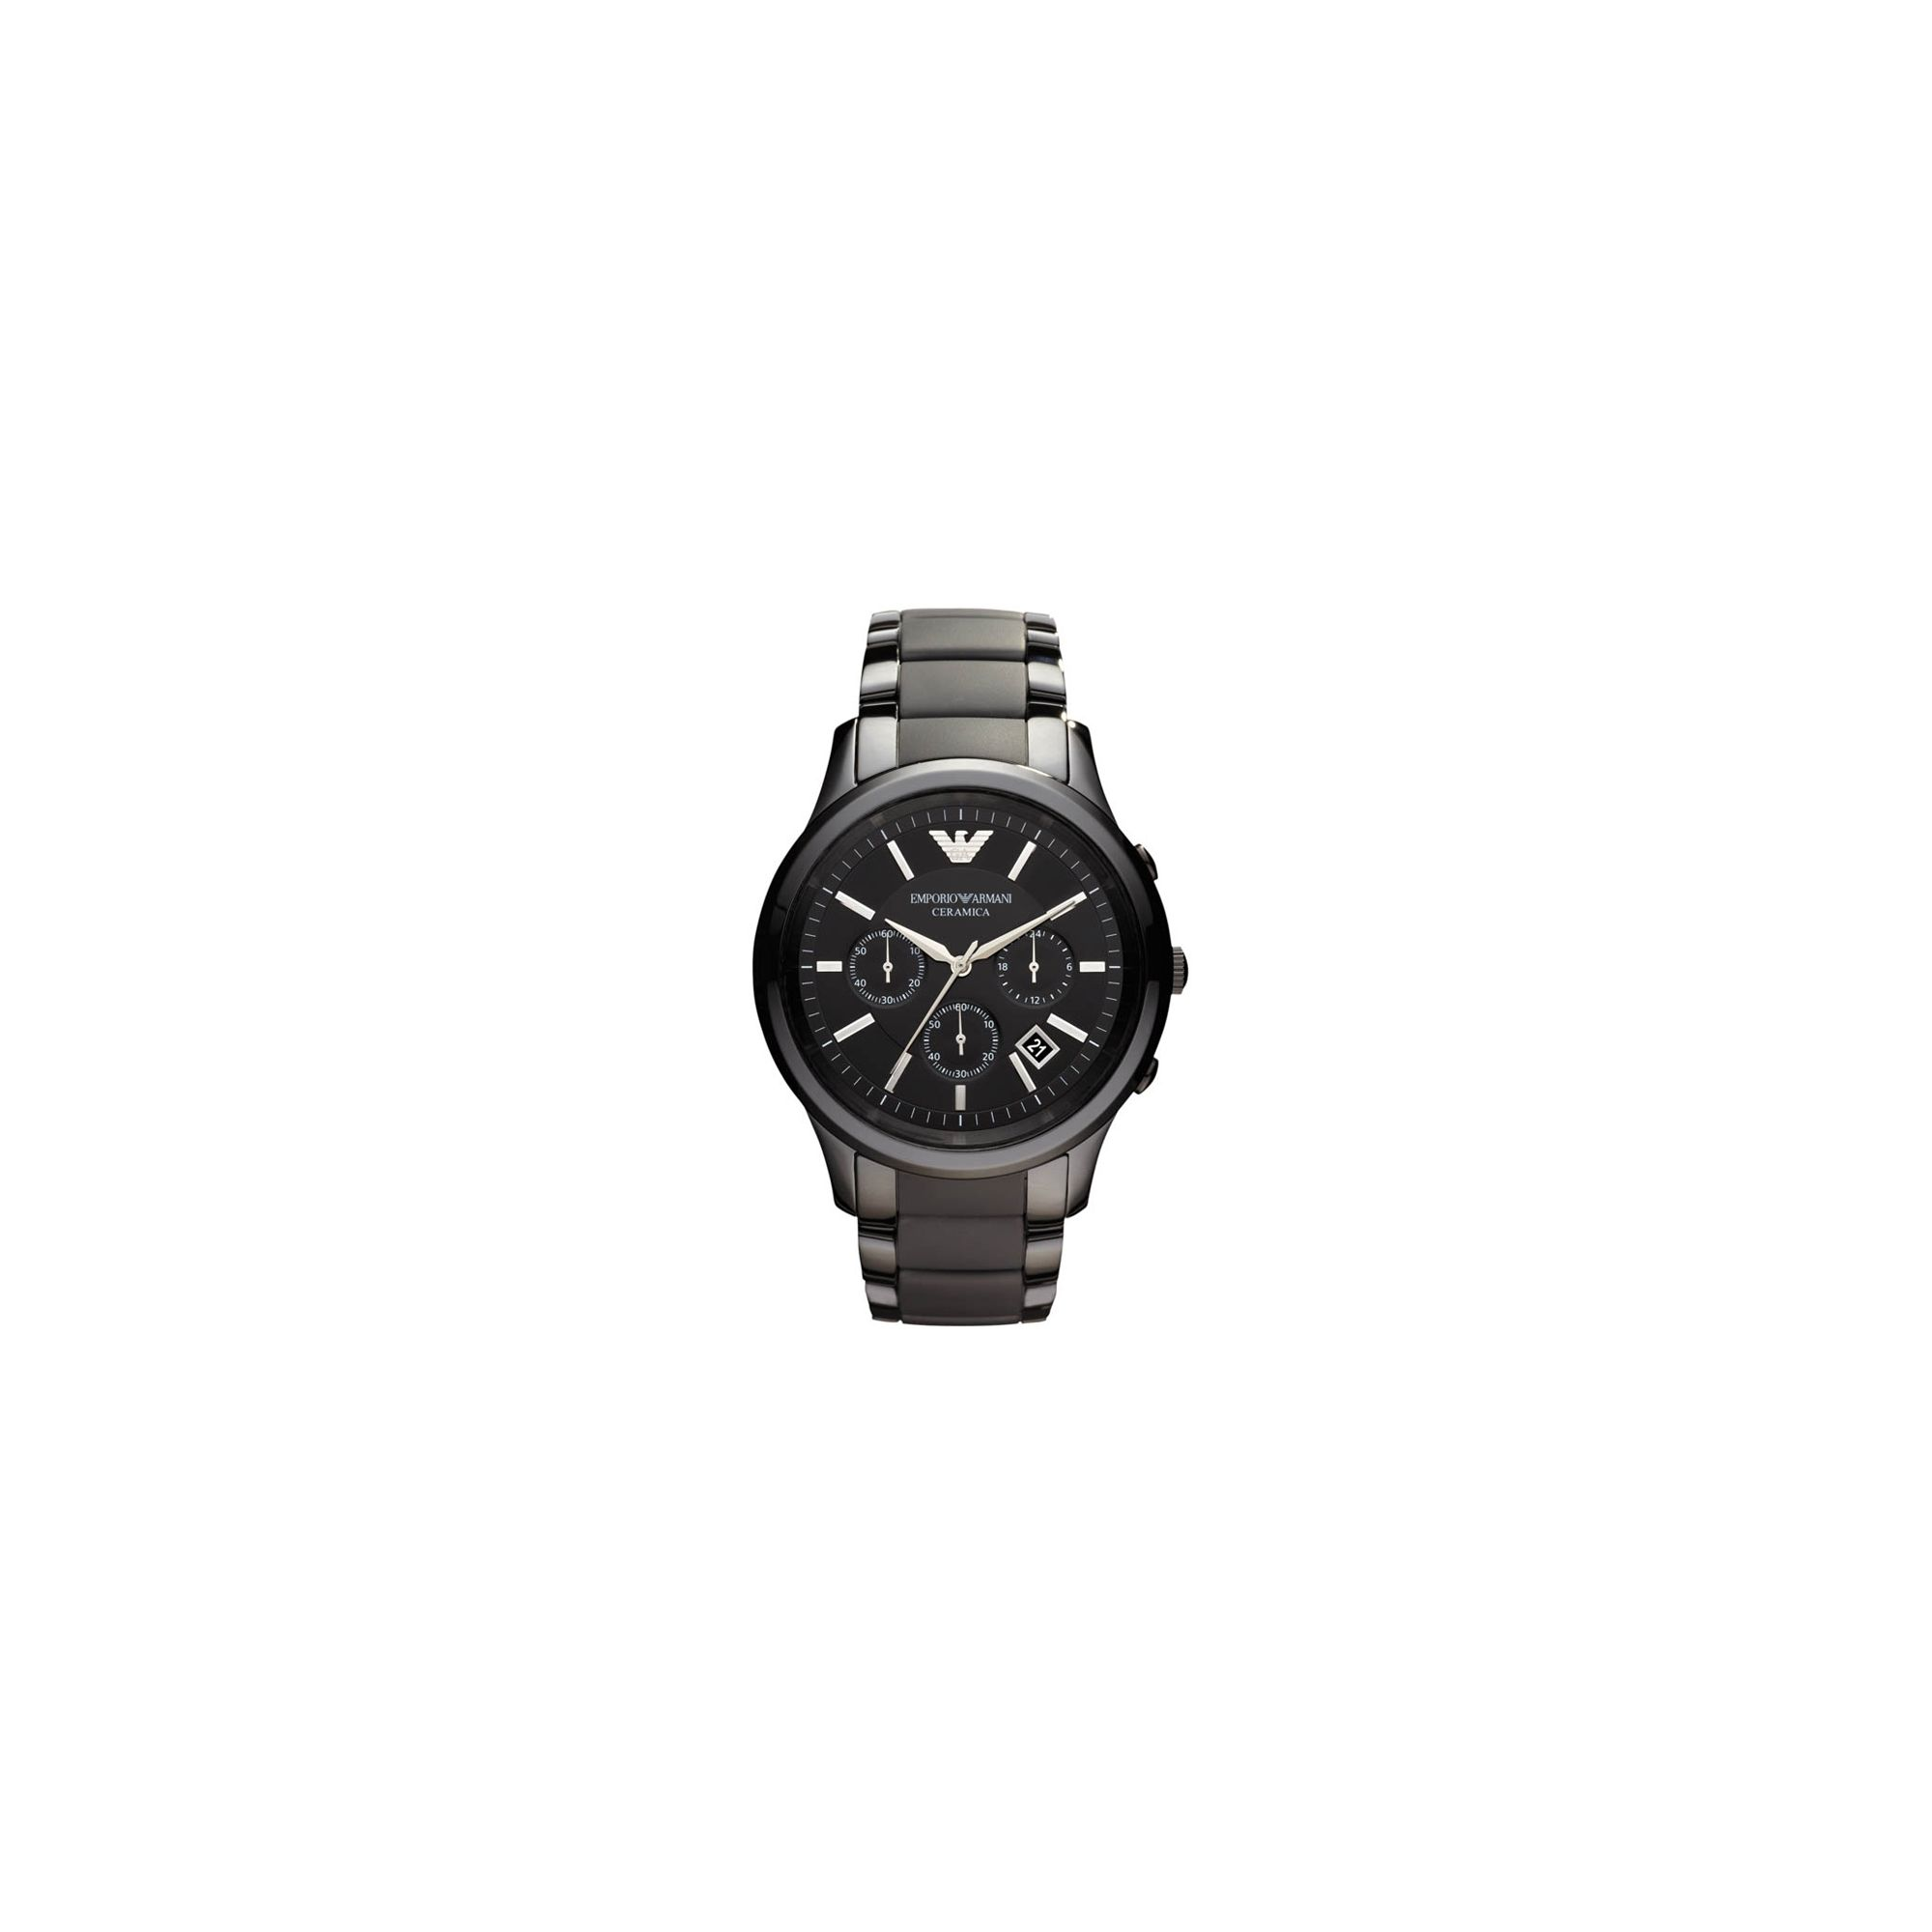 Emporio Armani Black Ceramica Chronograph Watch AR1452 at Tesco Direct